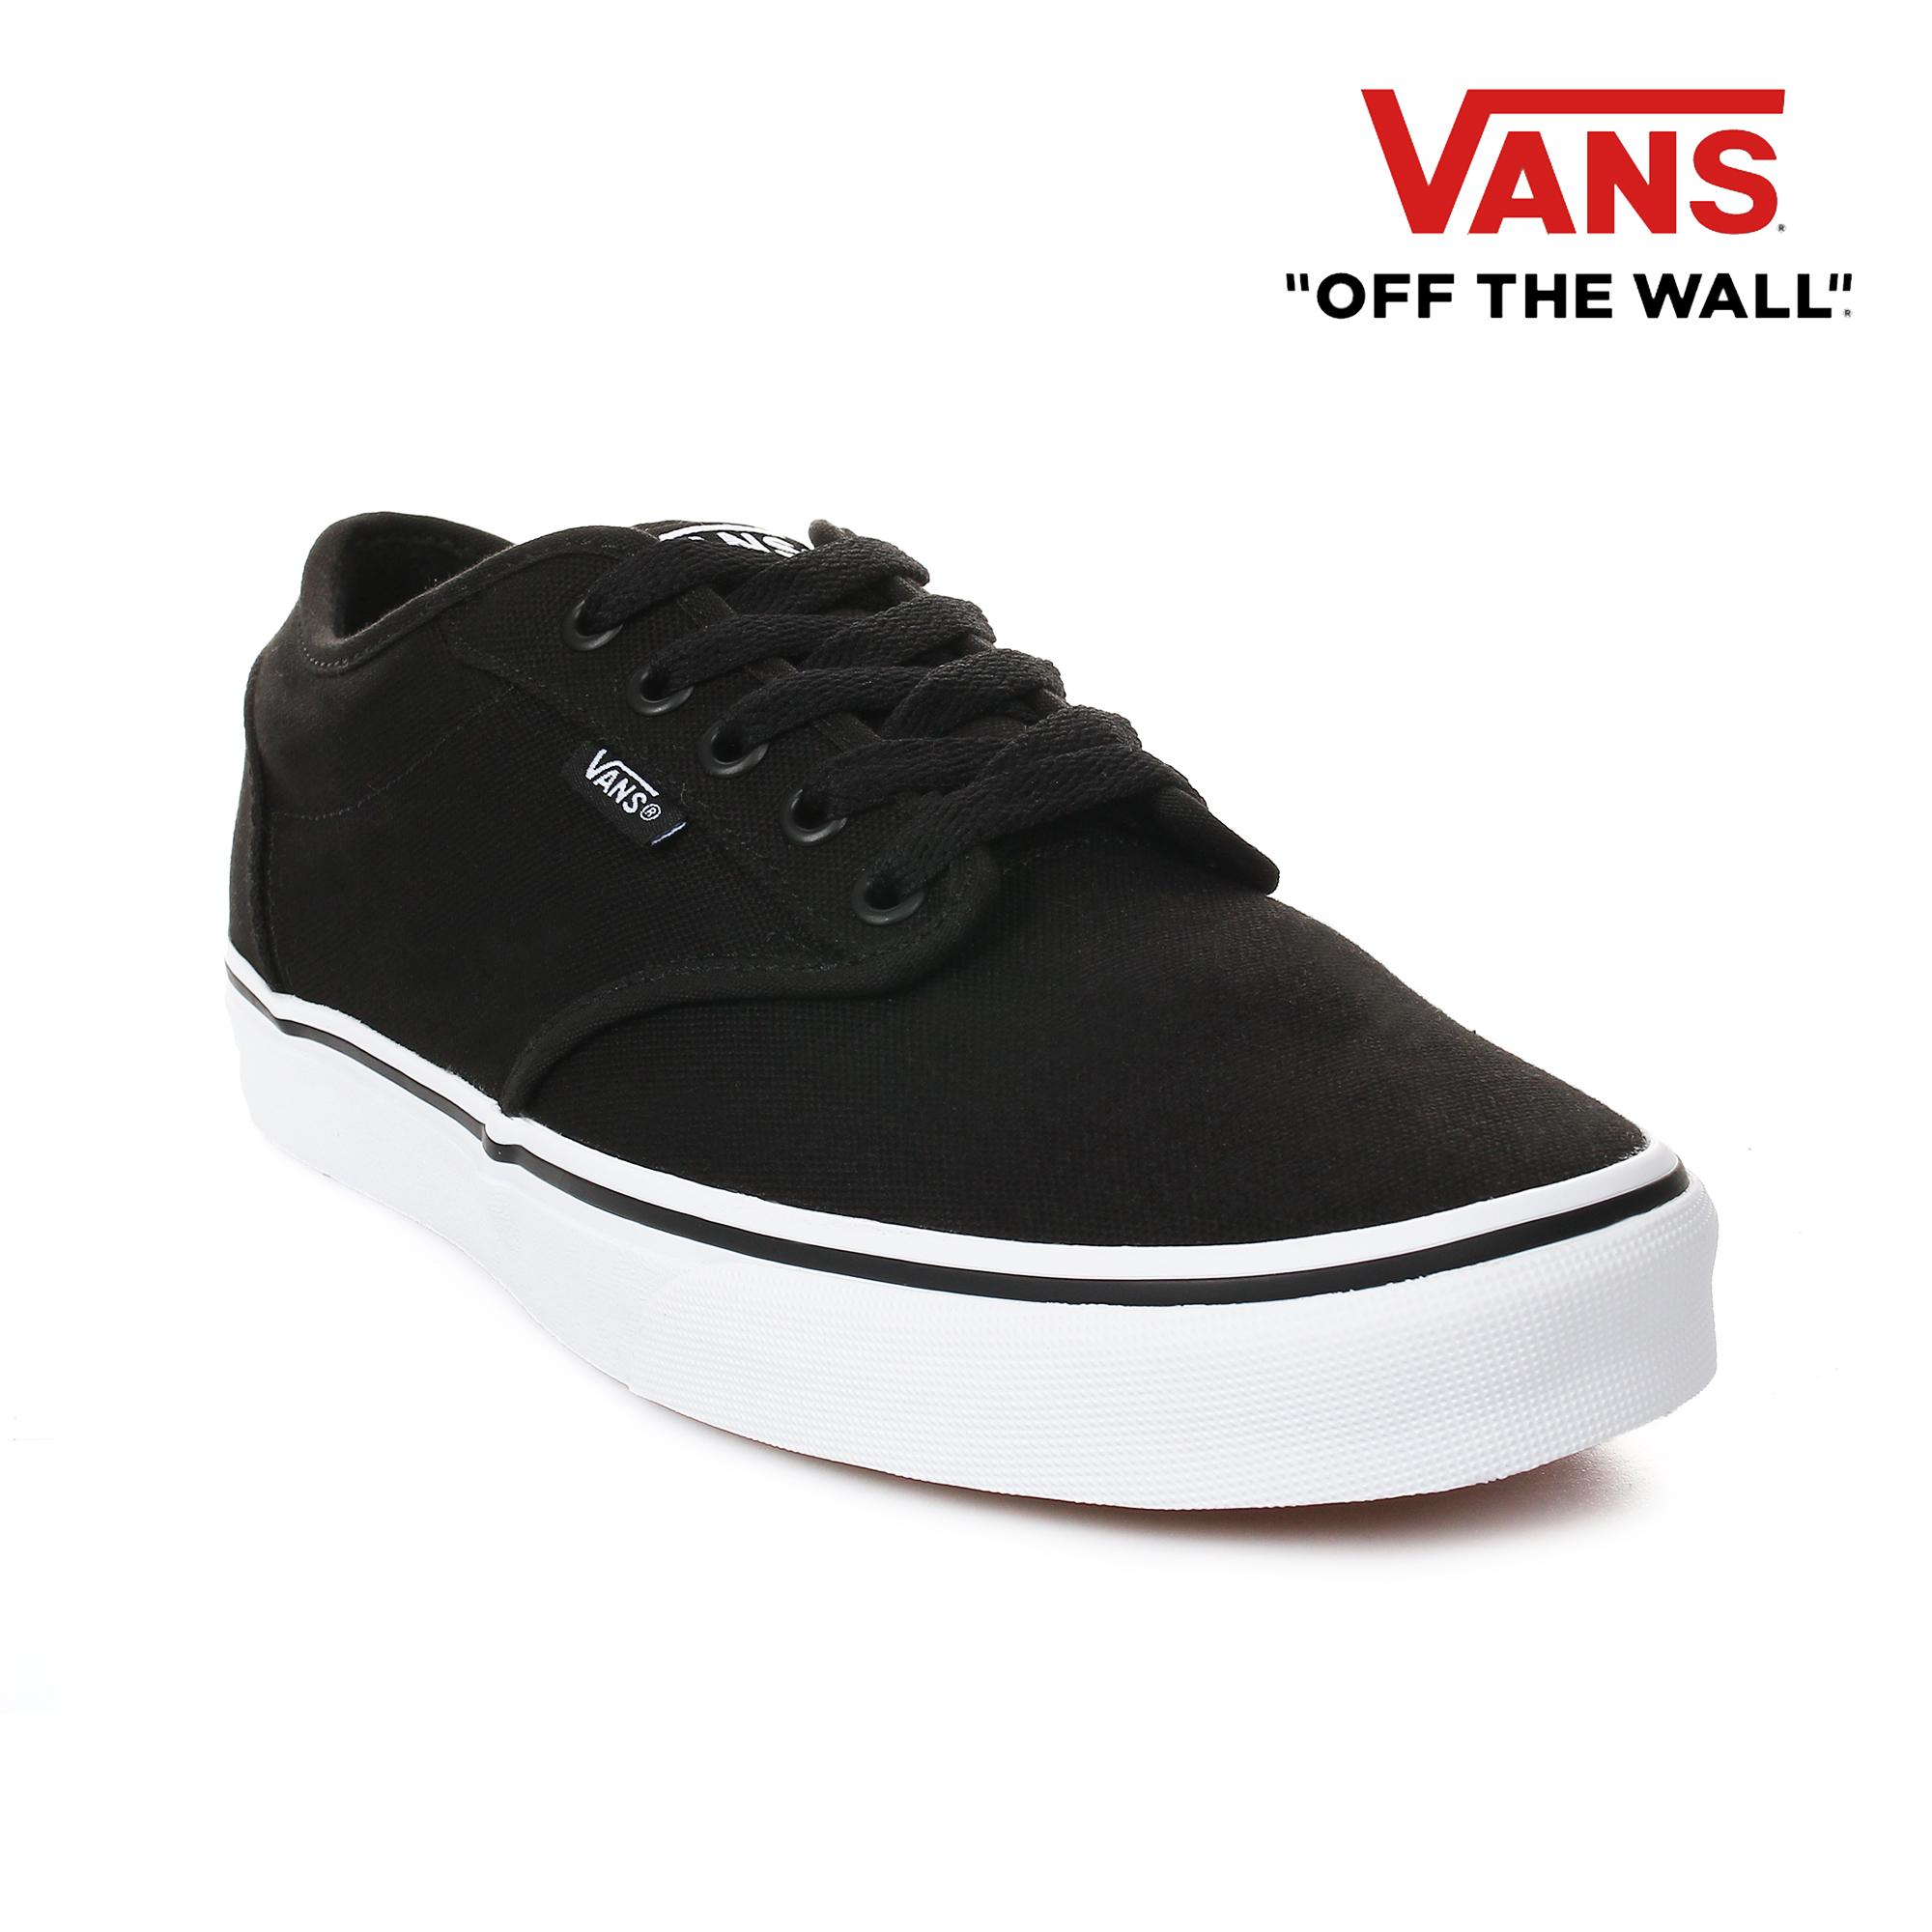 6f7cfab17baa4f Vans Shoes for Men Philippines - Vans Men s Shoes for sale - prices ...